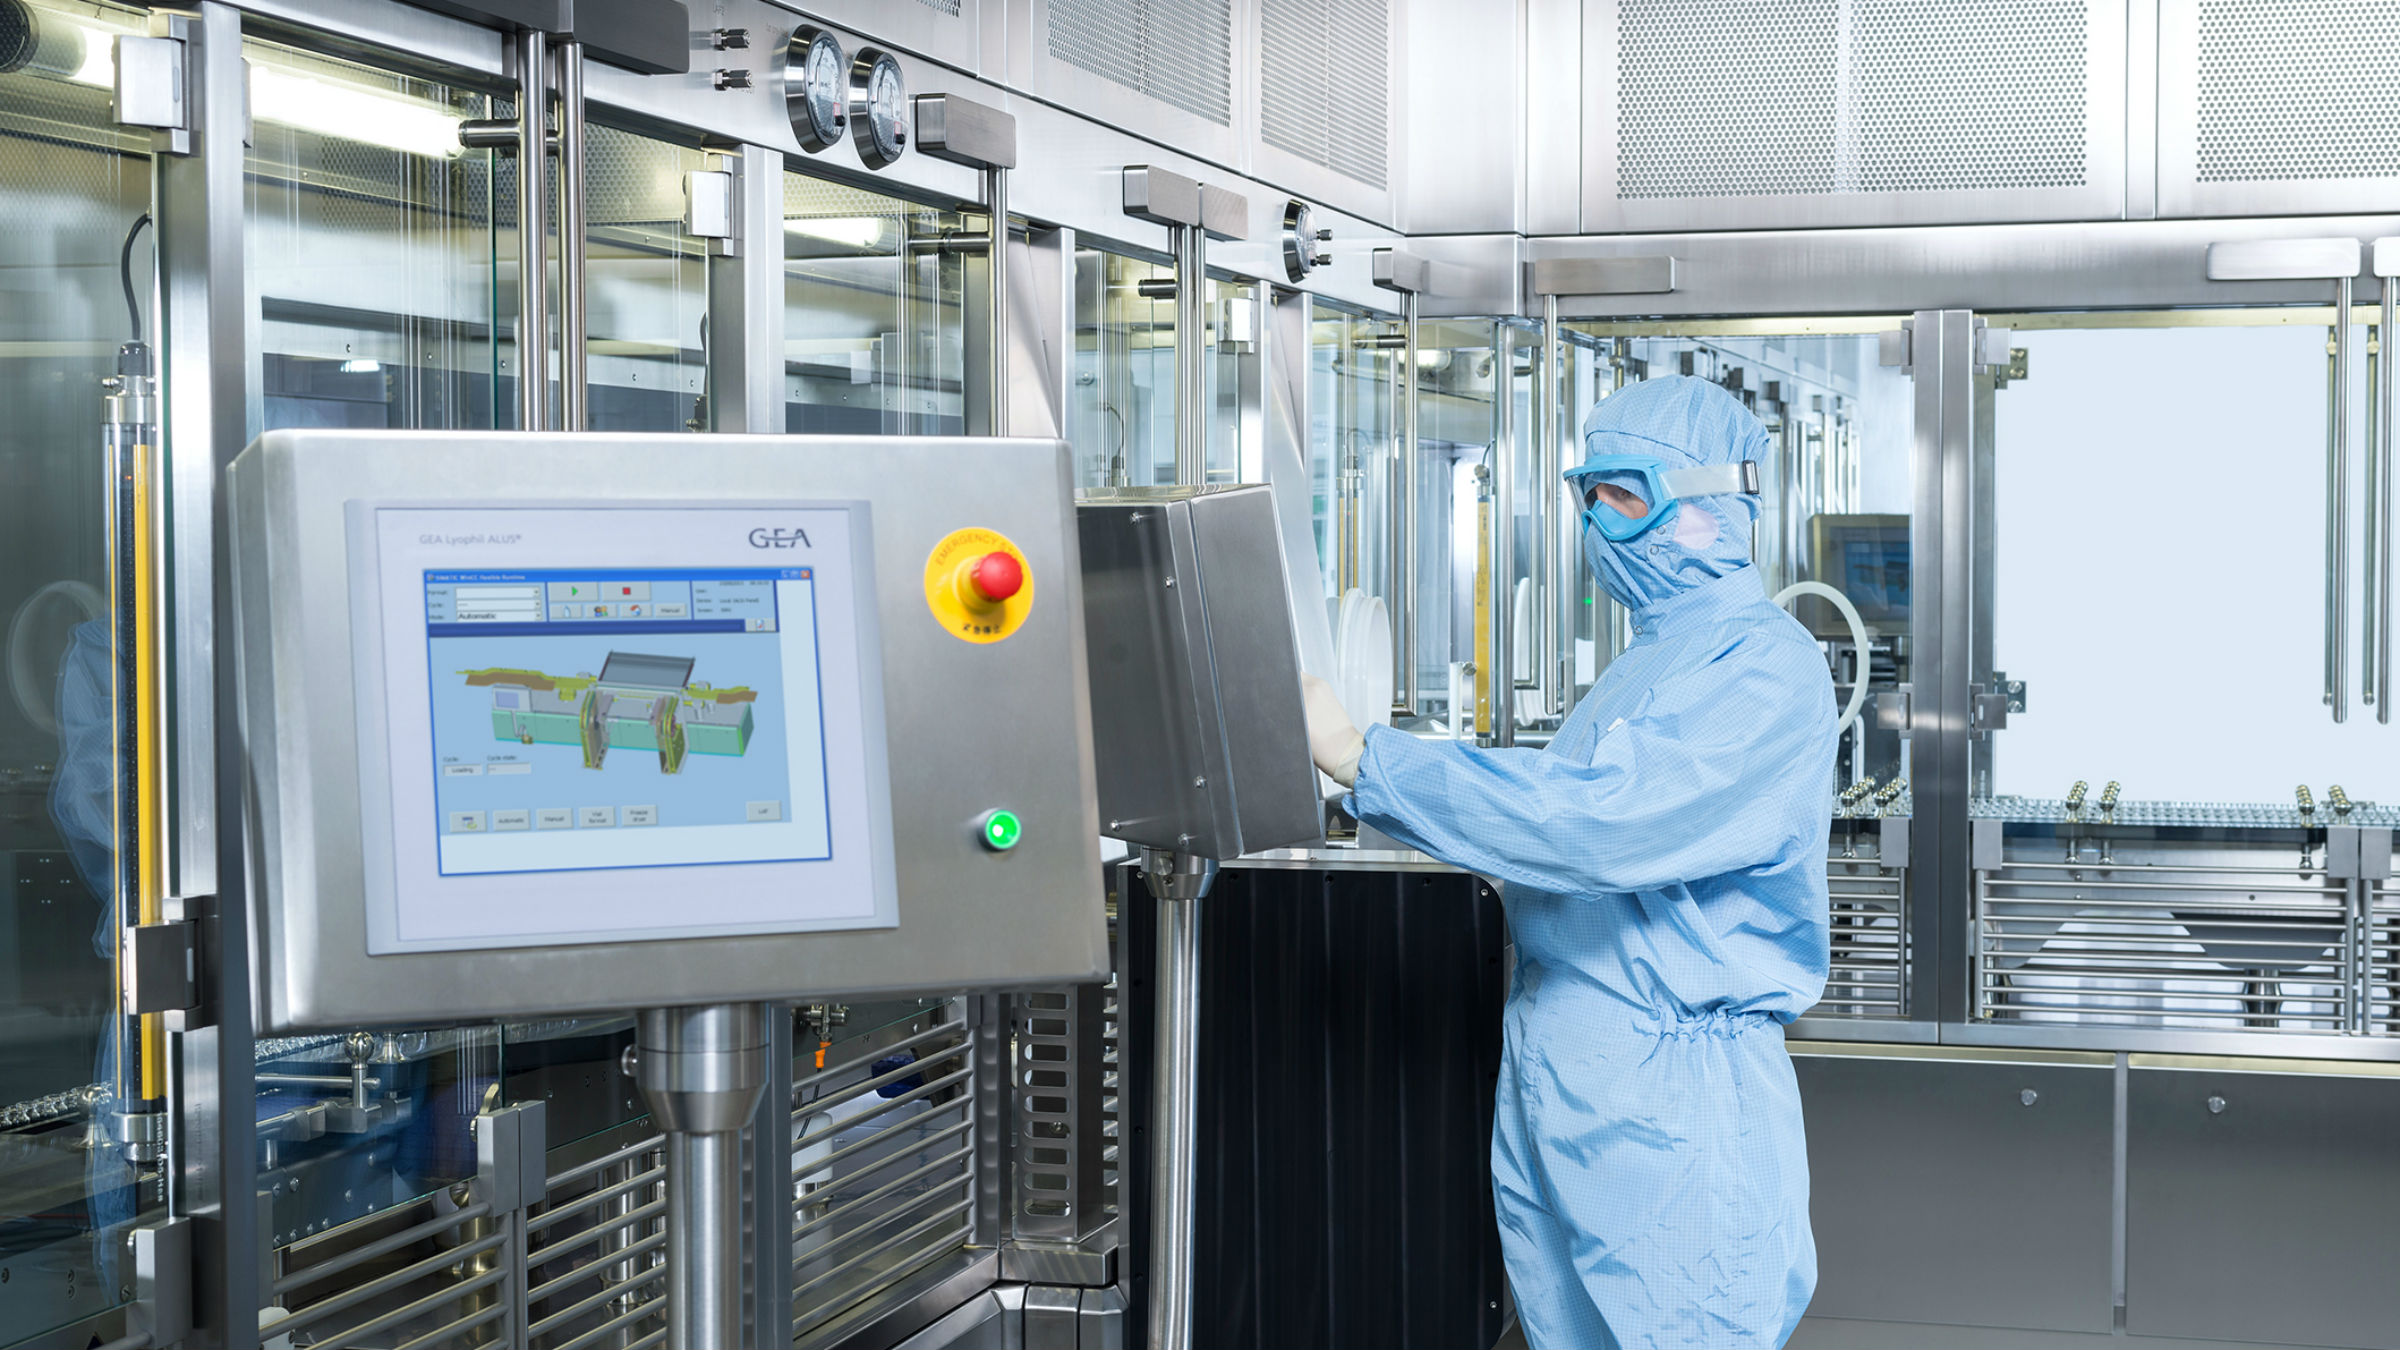 GEA presents Integrated Freeze-Drying Solutions at ACHEMA 2018